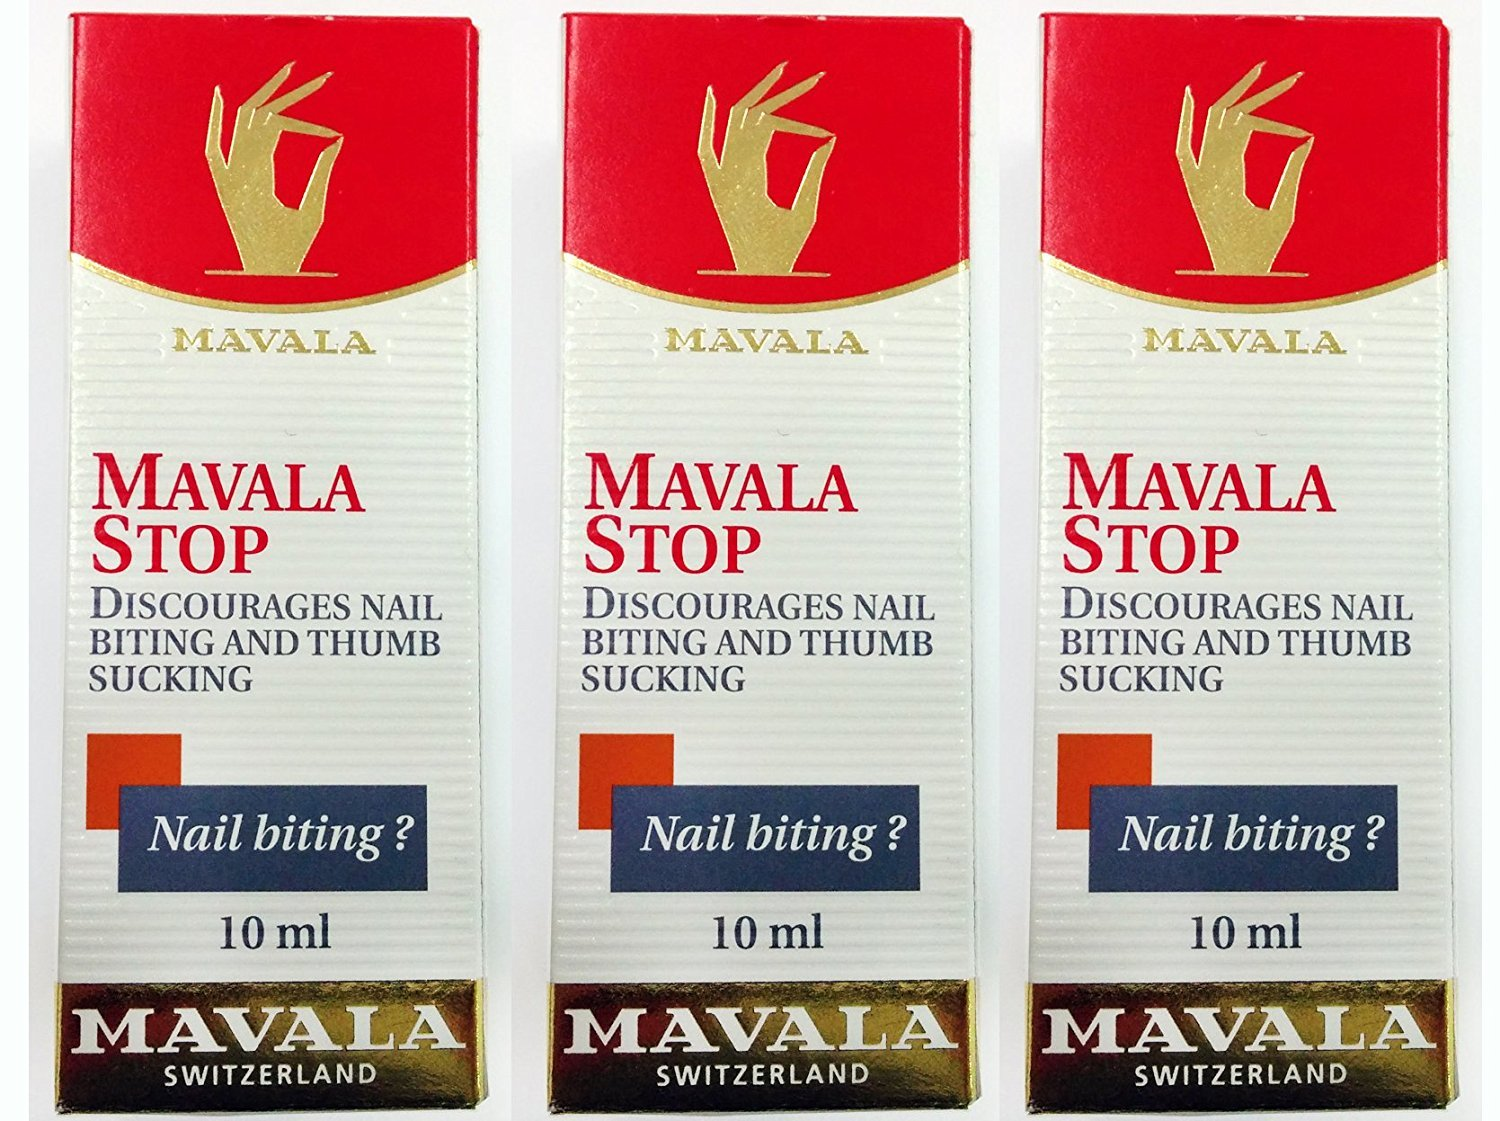 3 Pack of Mavala Stop Nail Biting and Thumb Sucking 0.3oz/10ml, Mavala Switzerland, Best Value: Total of 30ml!